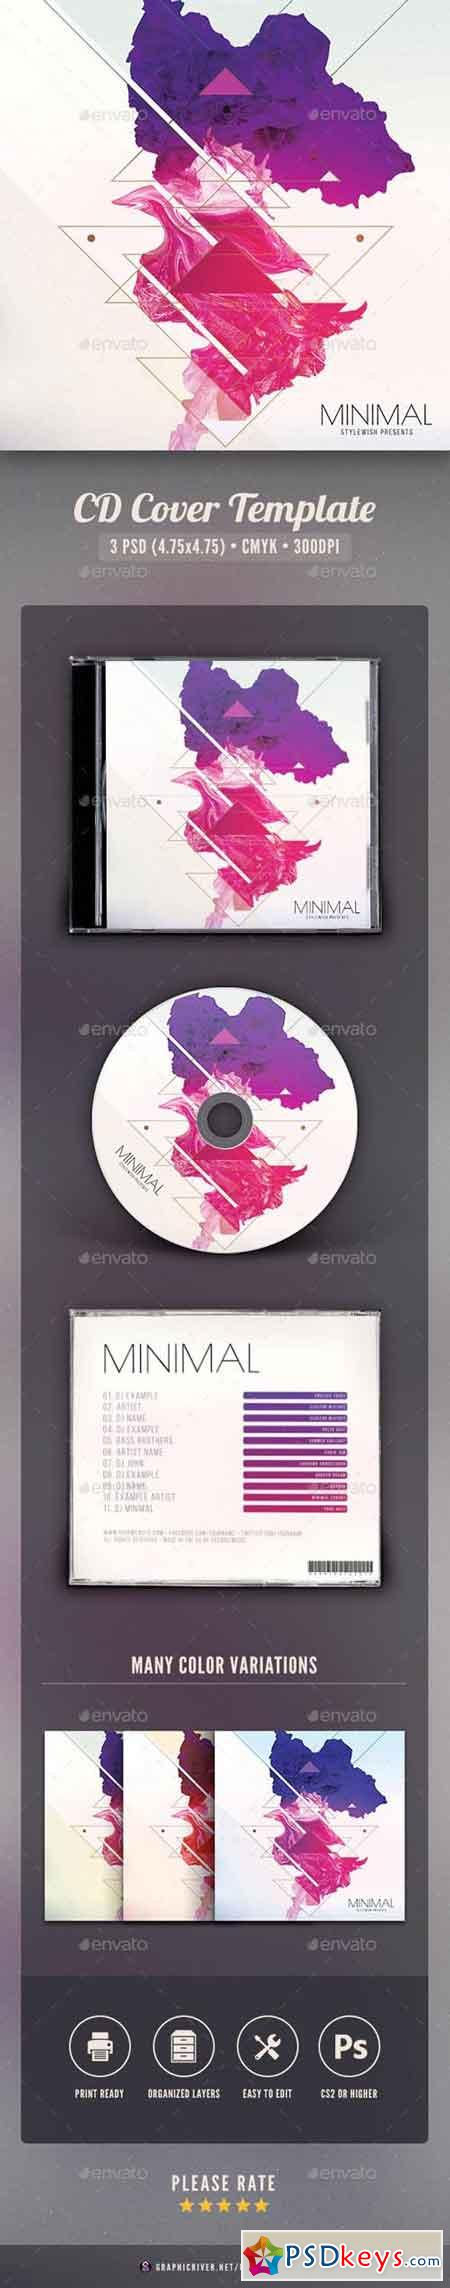 Minimal CD Cover Artwork 16018058